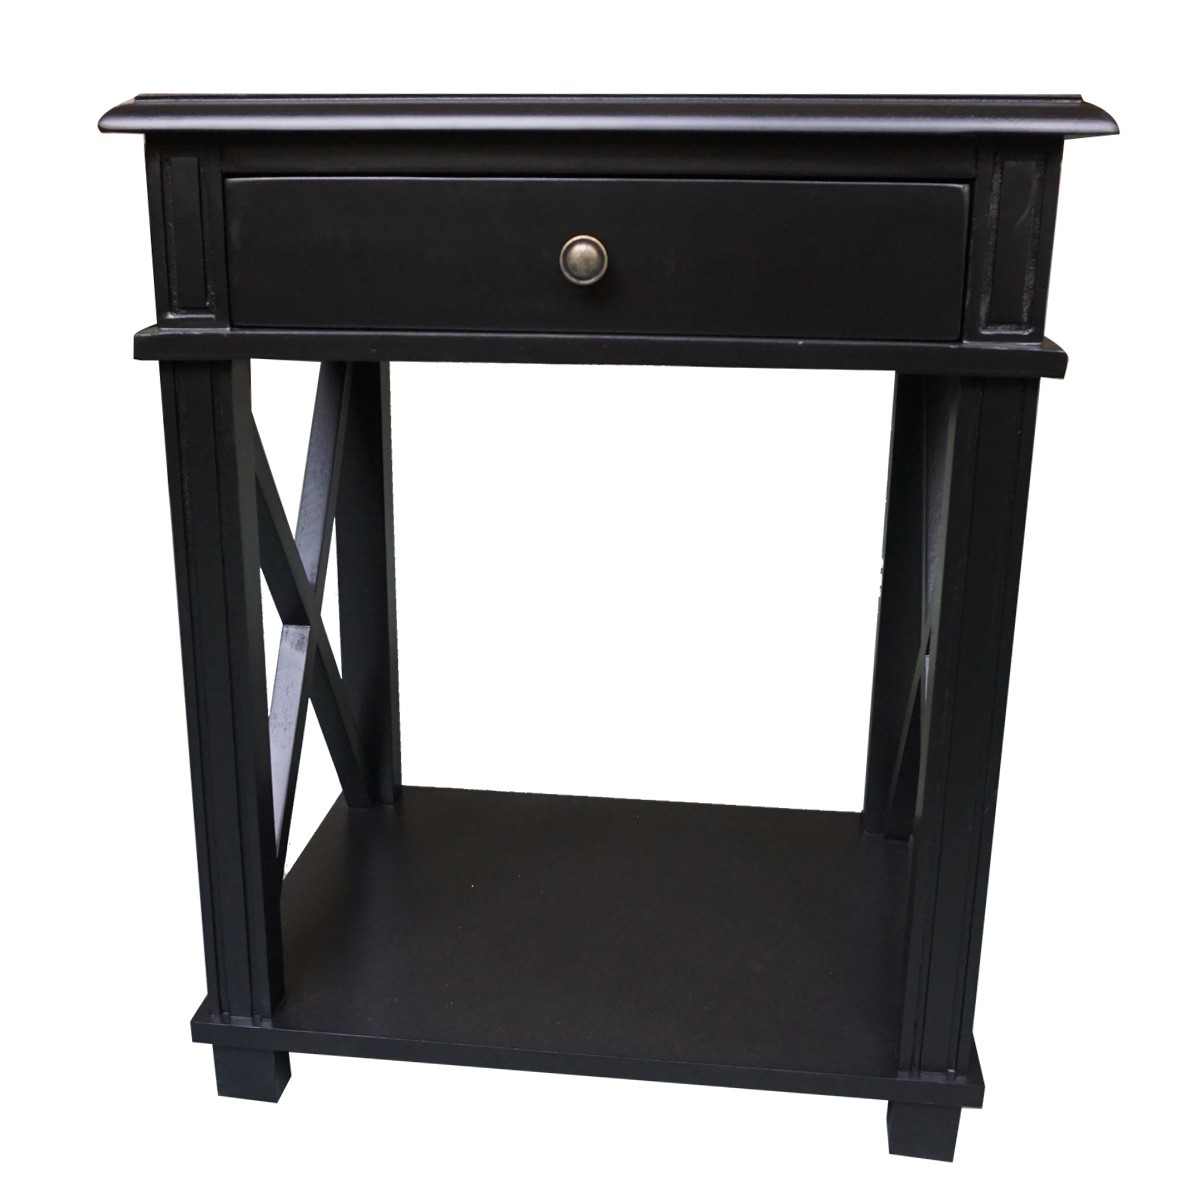 Hamptons Halifax One Drawer Bedside Lamp Table Nightstand